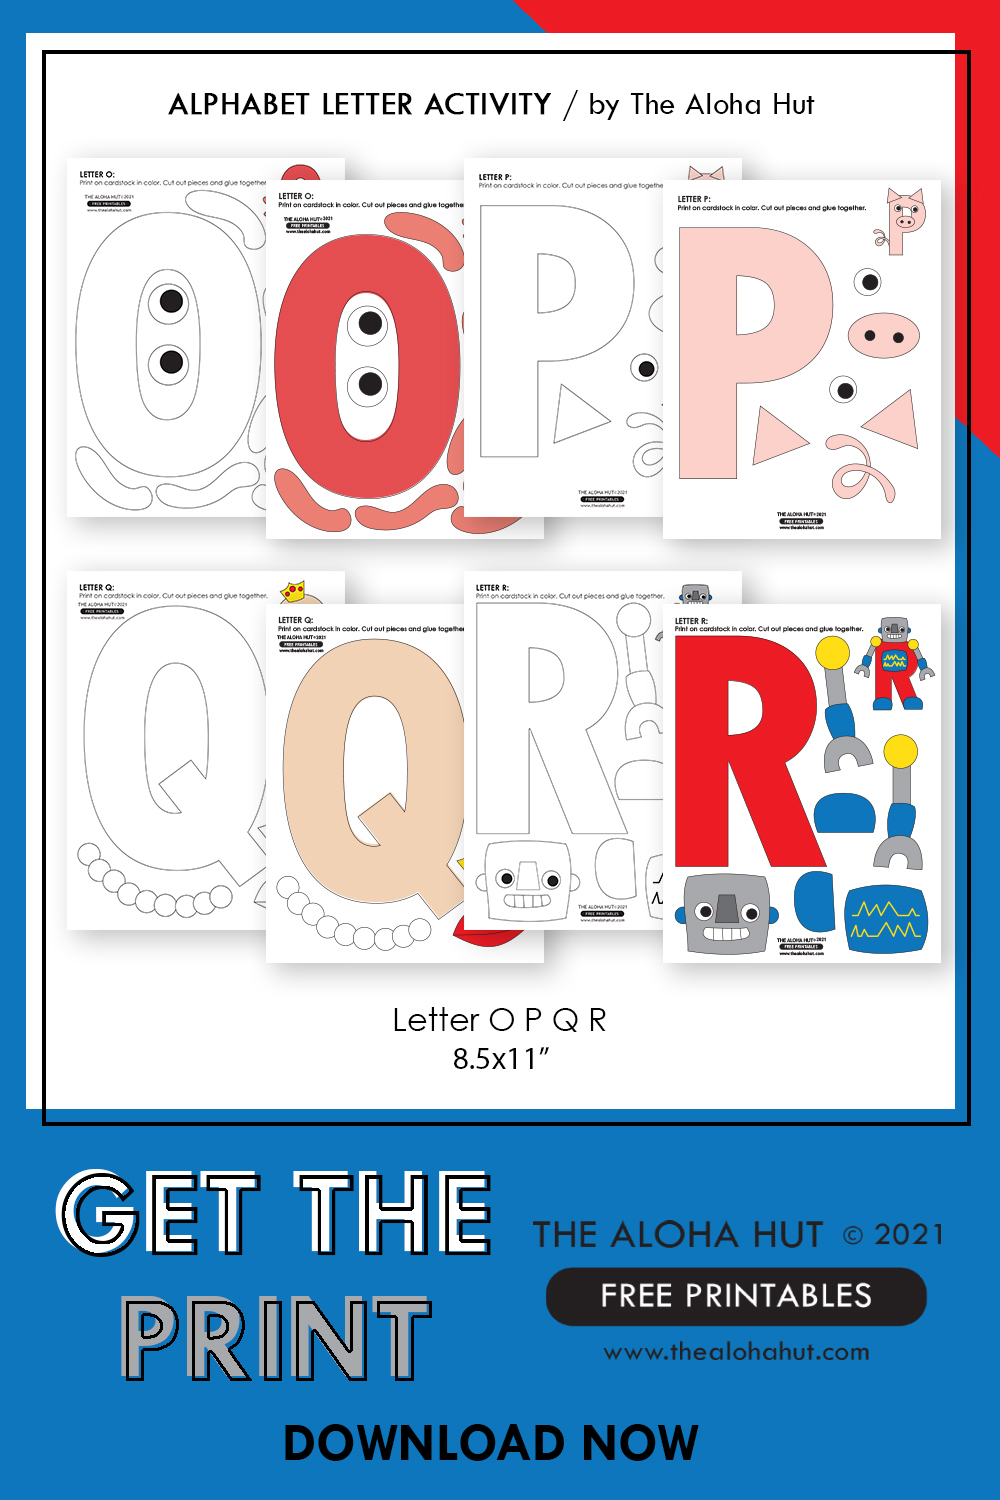 Alphabet Letter Crafts - Letters O P Q R - free printables 3 by the Aloha Hut